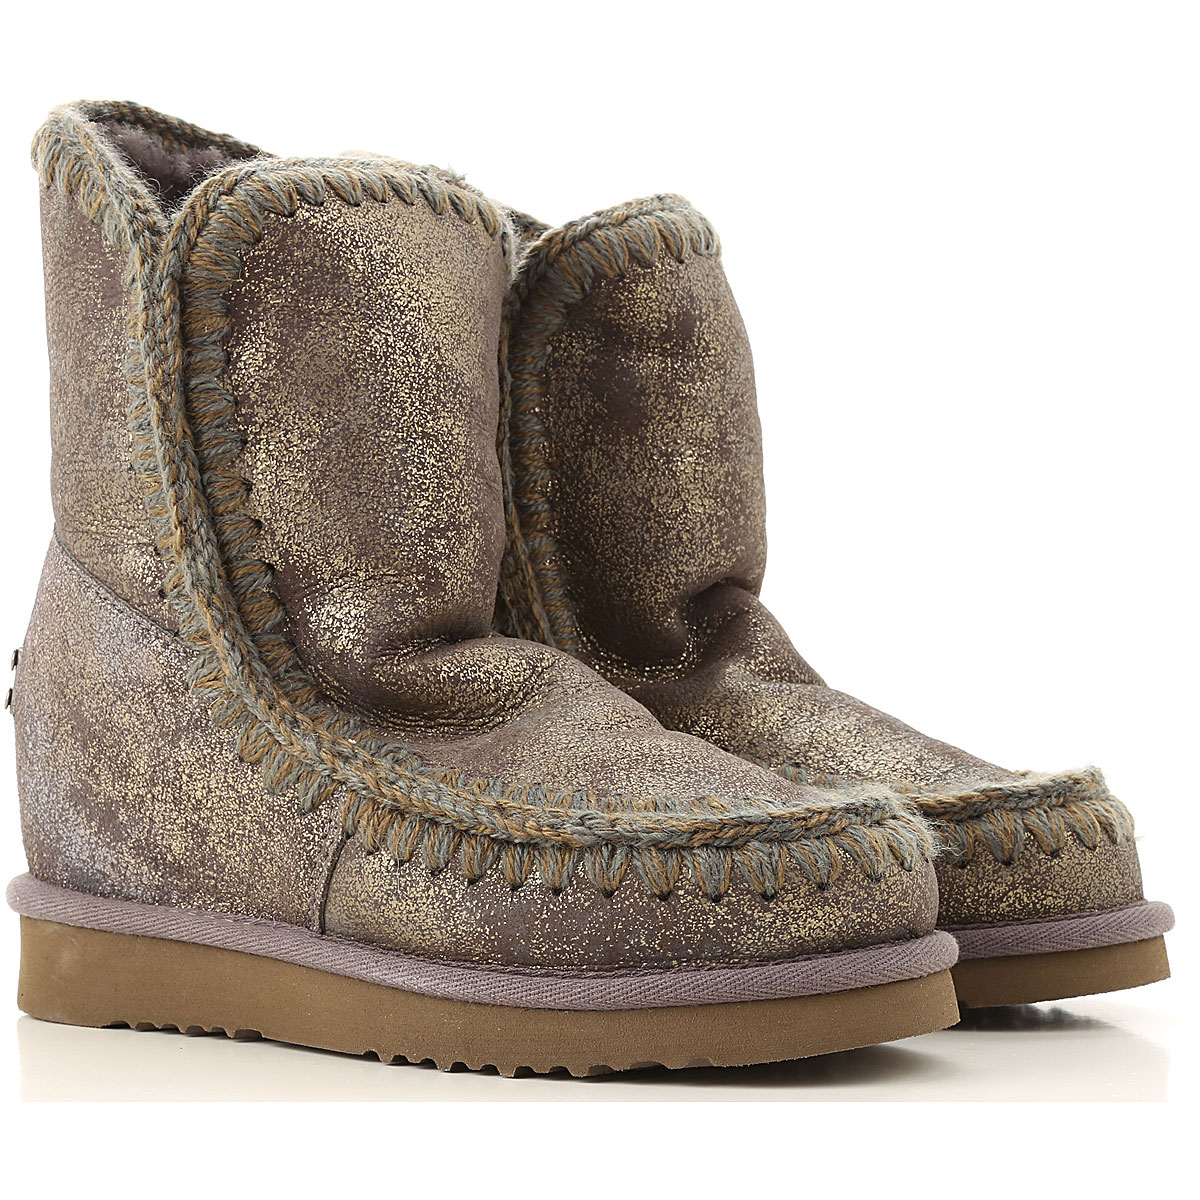 Mou Boots for Women, Booties On Sale in Outlet, Charcoal Grey, Leather, 2019, EUR 39 - UK 6 - USA 8.5 EUR 40 - UK 7 - USA 9.5